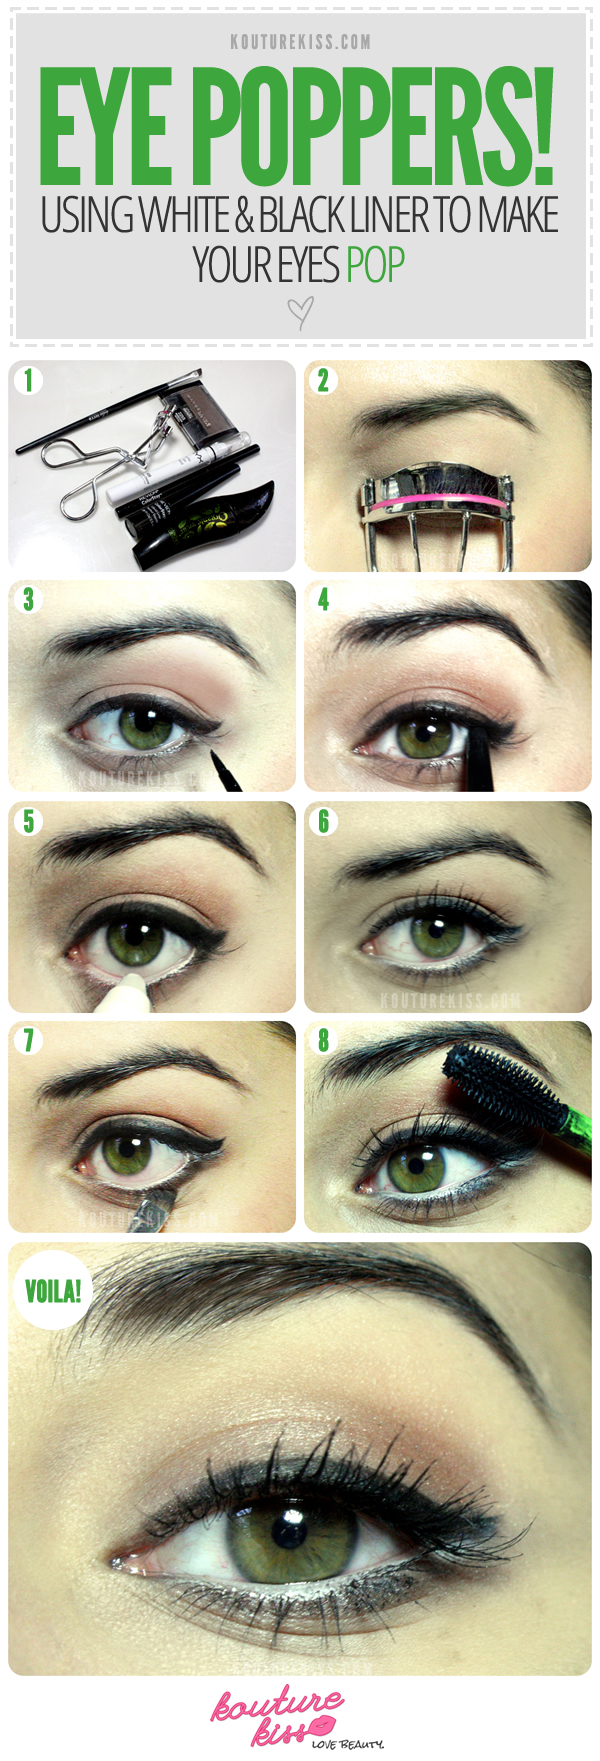 how to make the white of your eyes clear